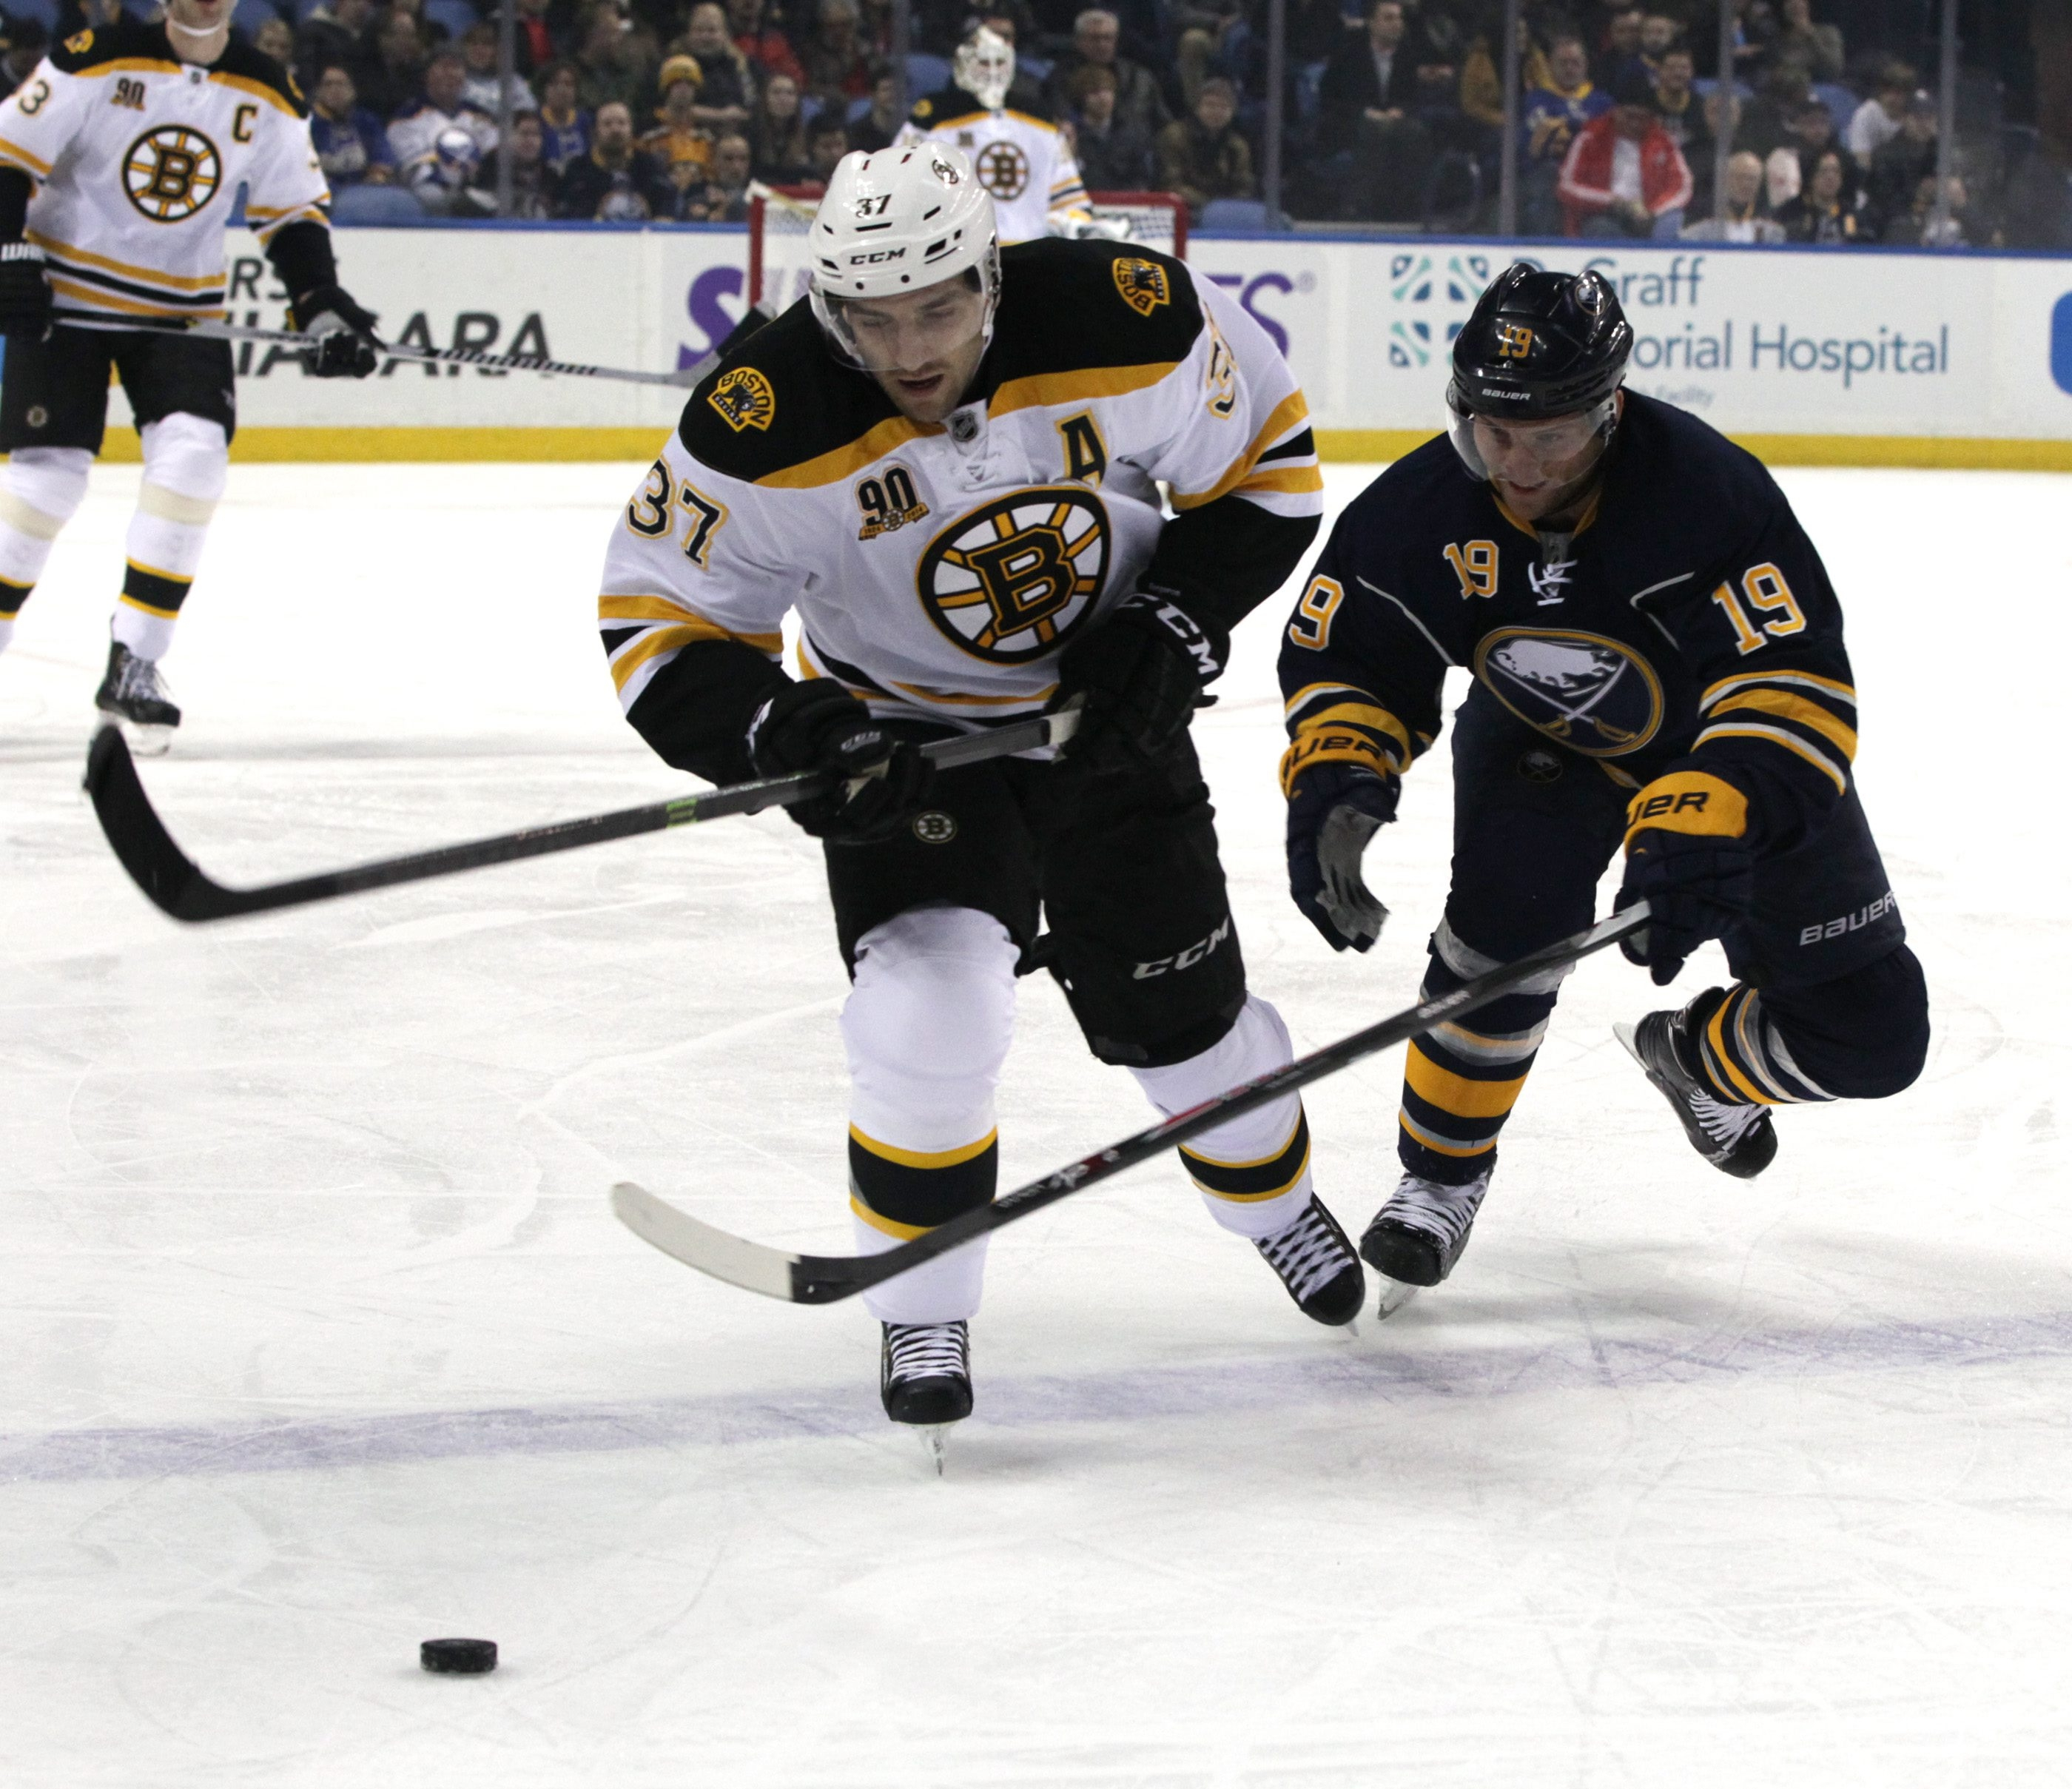 The Sabres' Cody Hodgson battles the Bruins' Patrice Bergeron for the puck in the first period.